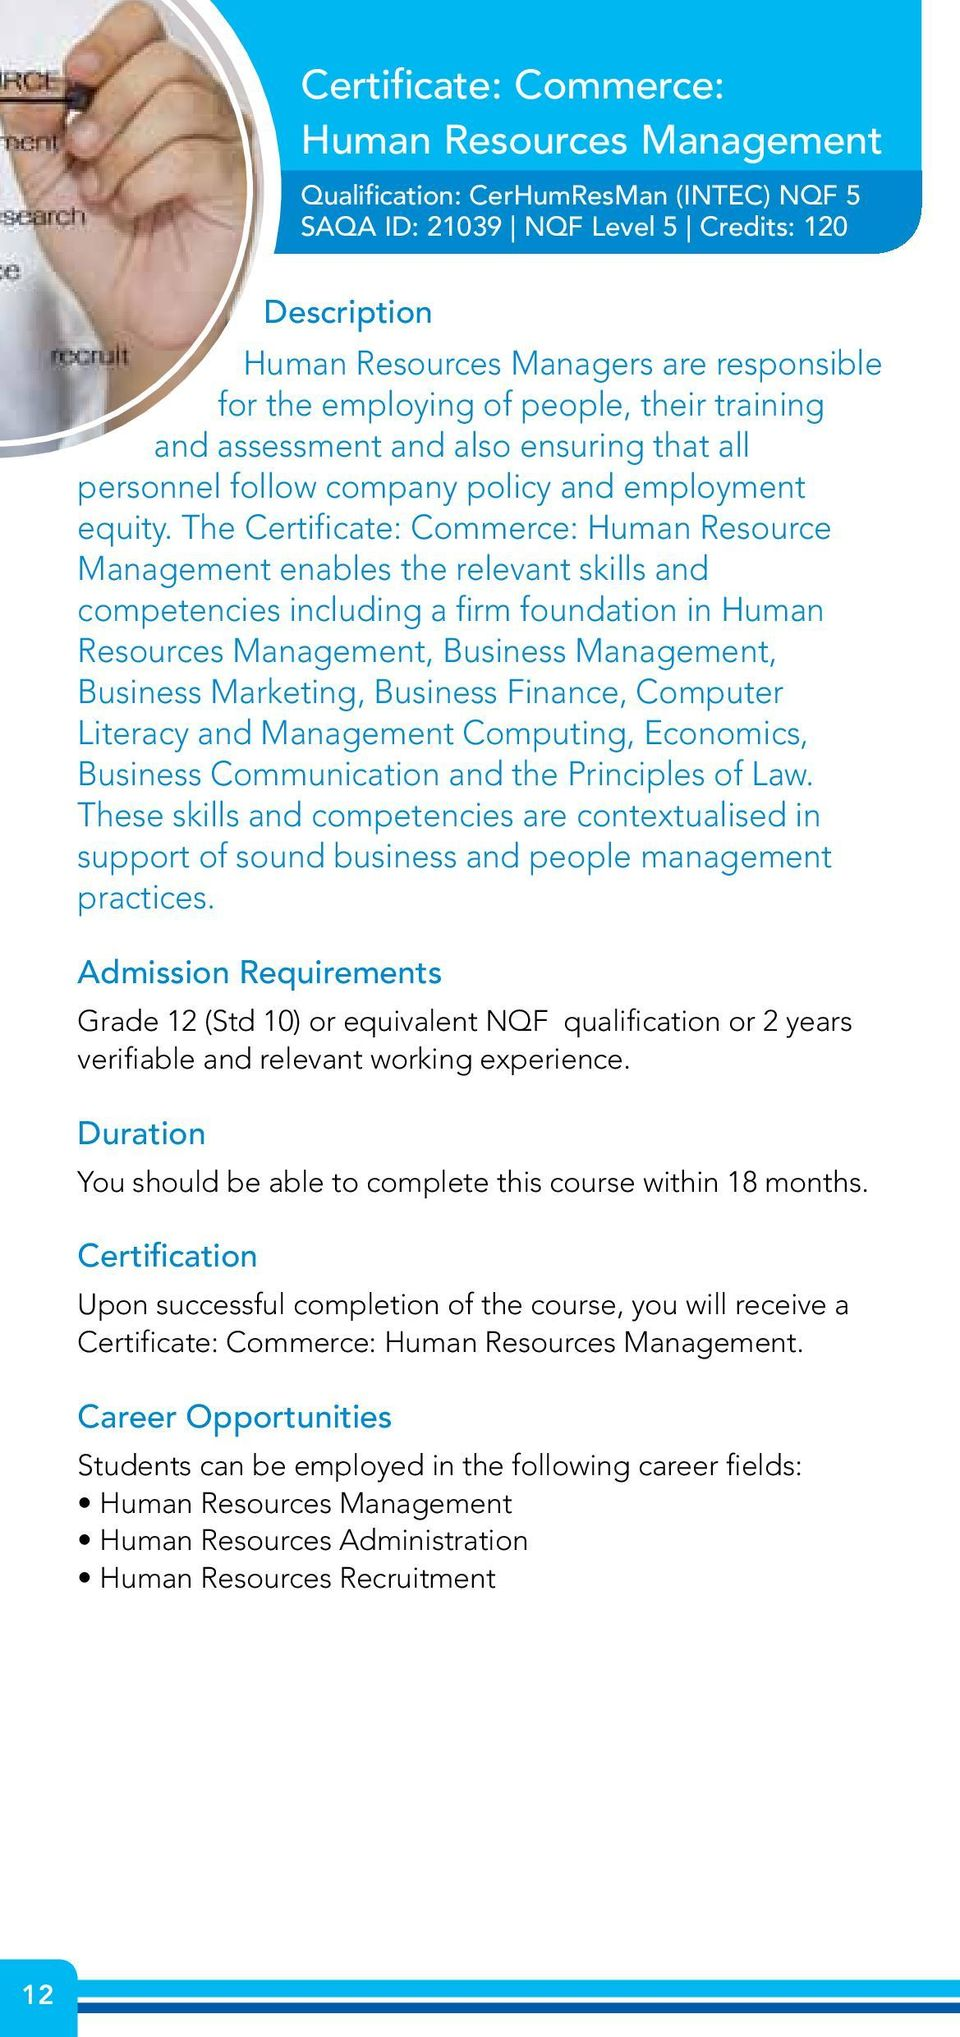 The Certificate: Commerce: Human Resource Management enables the relevant skills and competencies including a firm foundation in Human Resources Management, Business Management, Business Marketing,